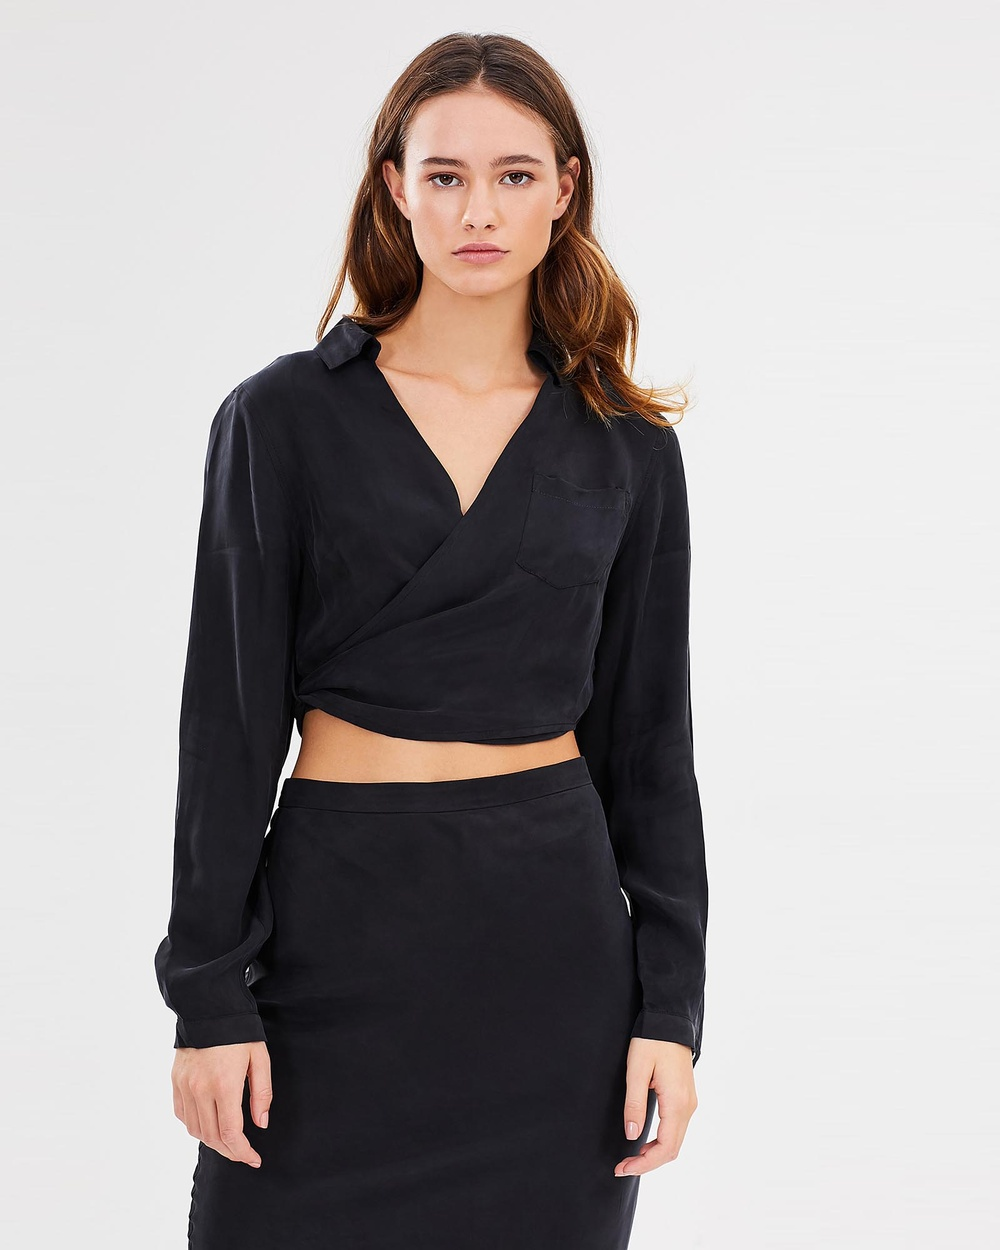 Third Form Essential Wrap Around Shirt Cropped tops Black Essential Wrap Around Shirt